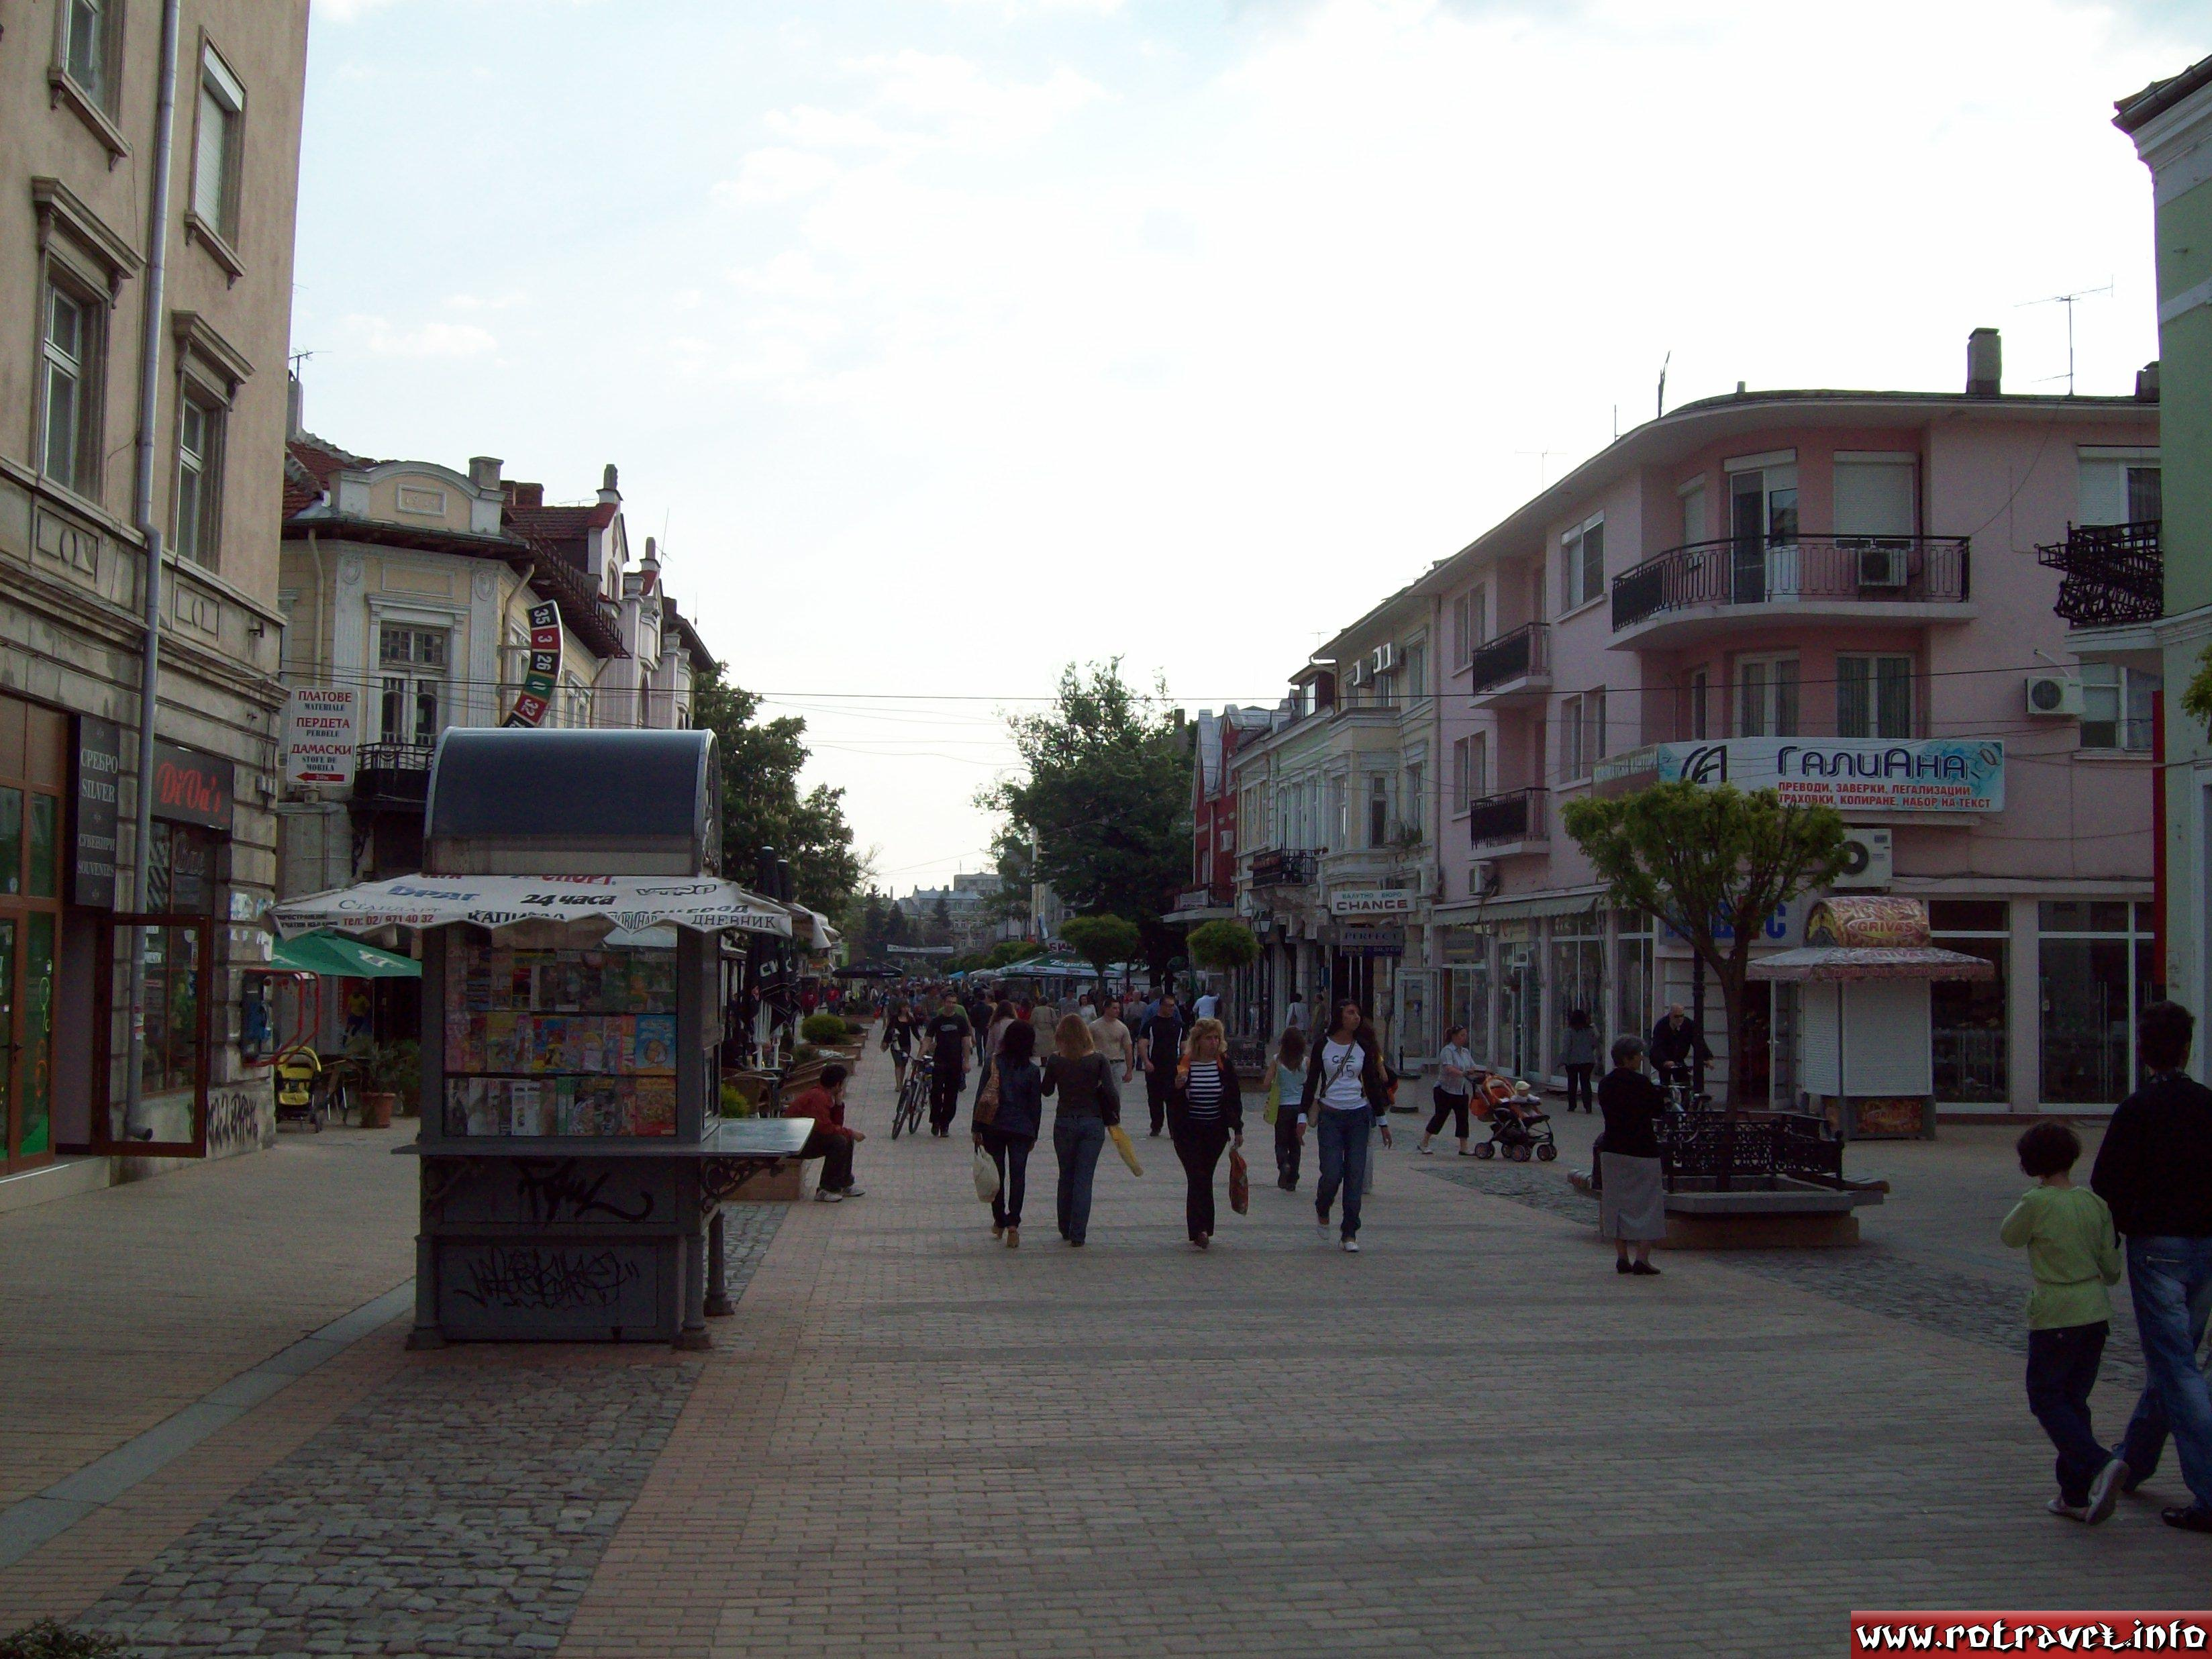 One of the principal streets from the old centre